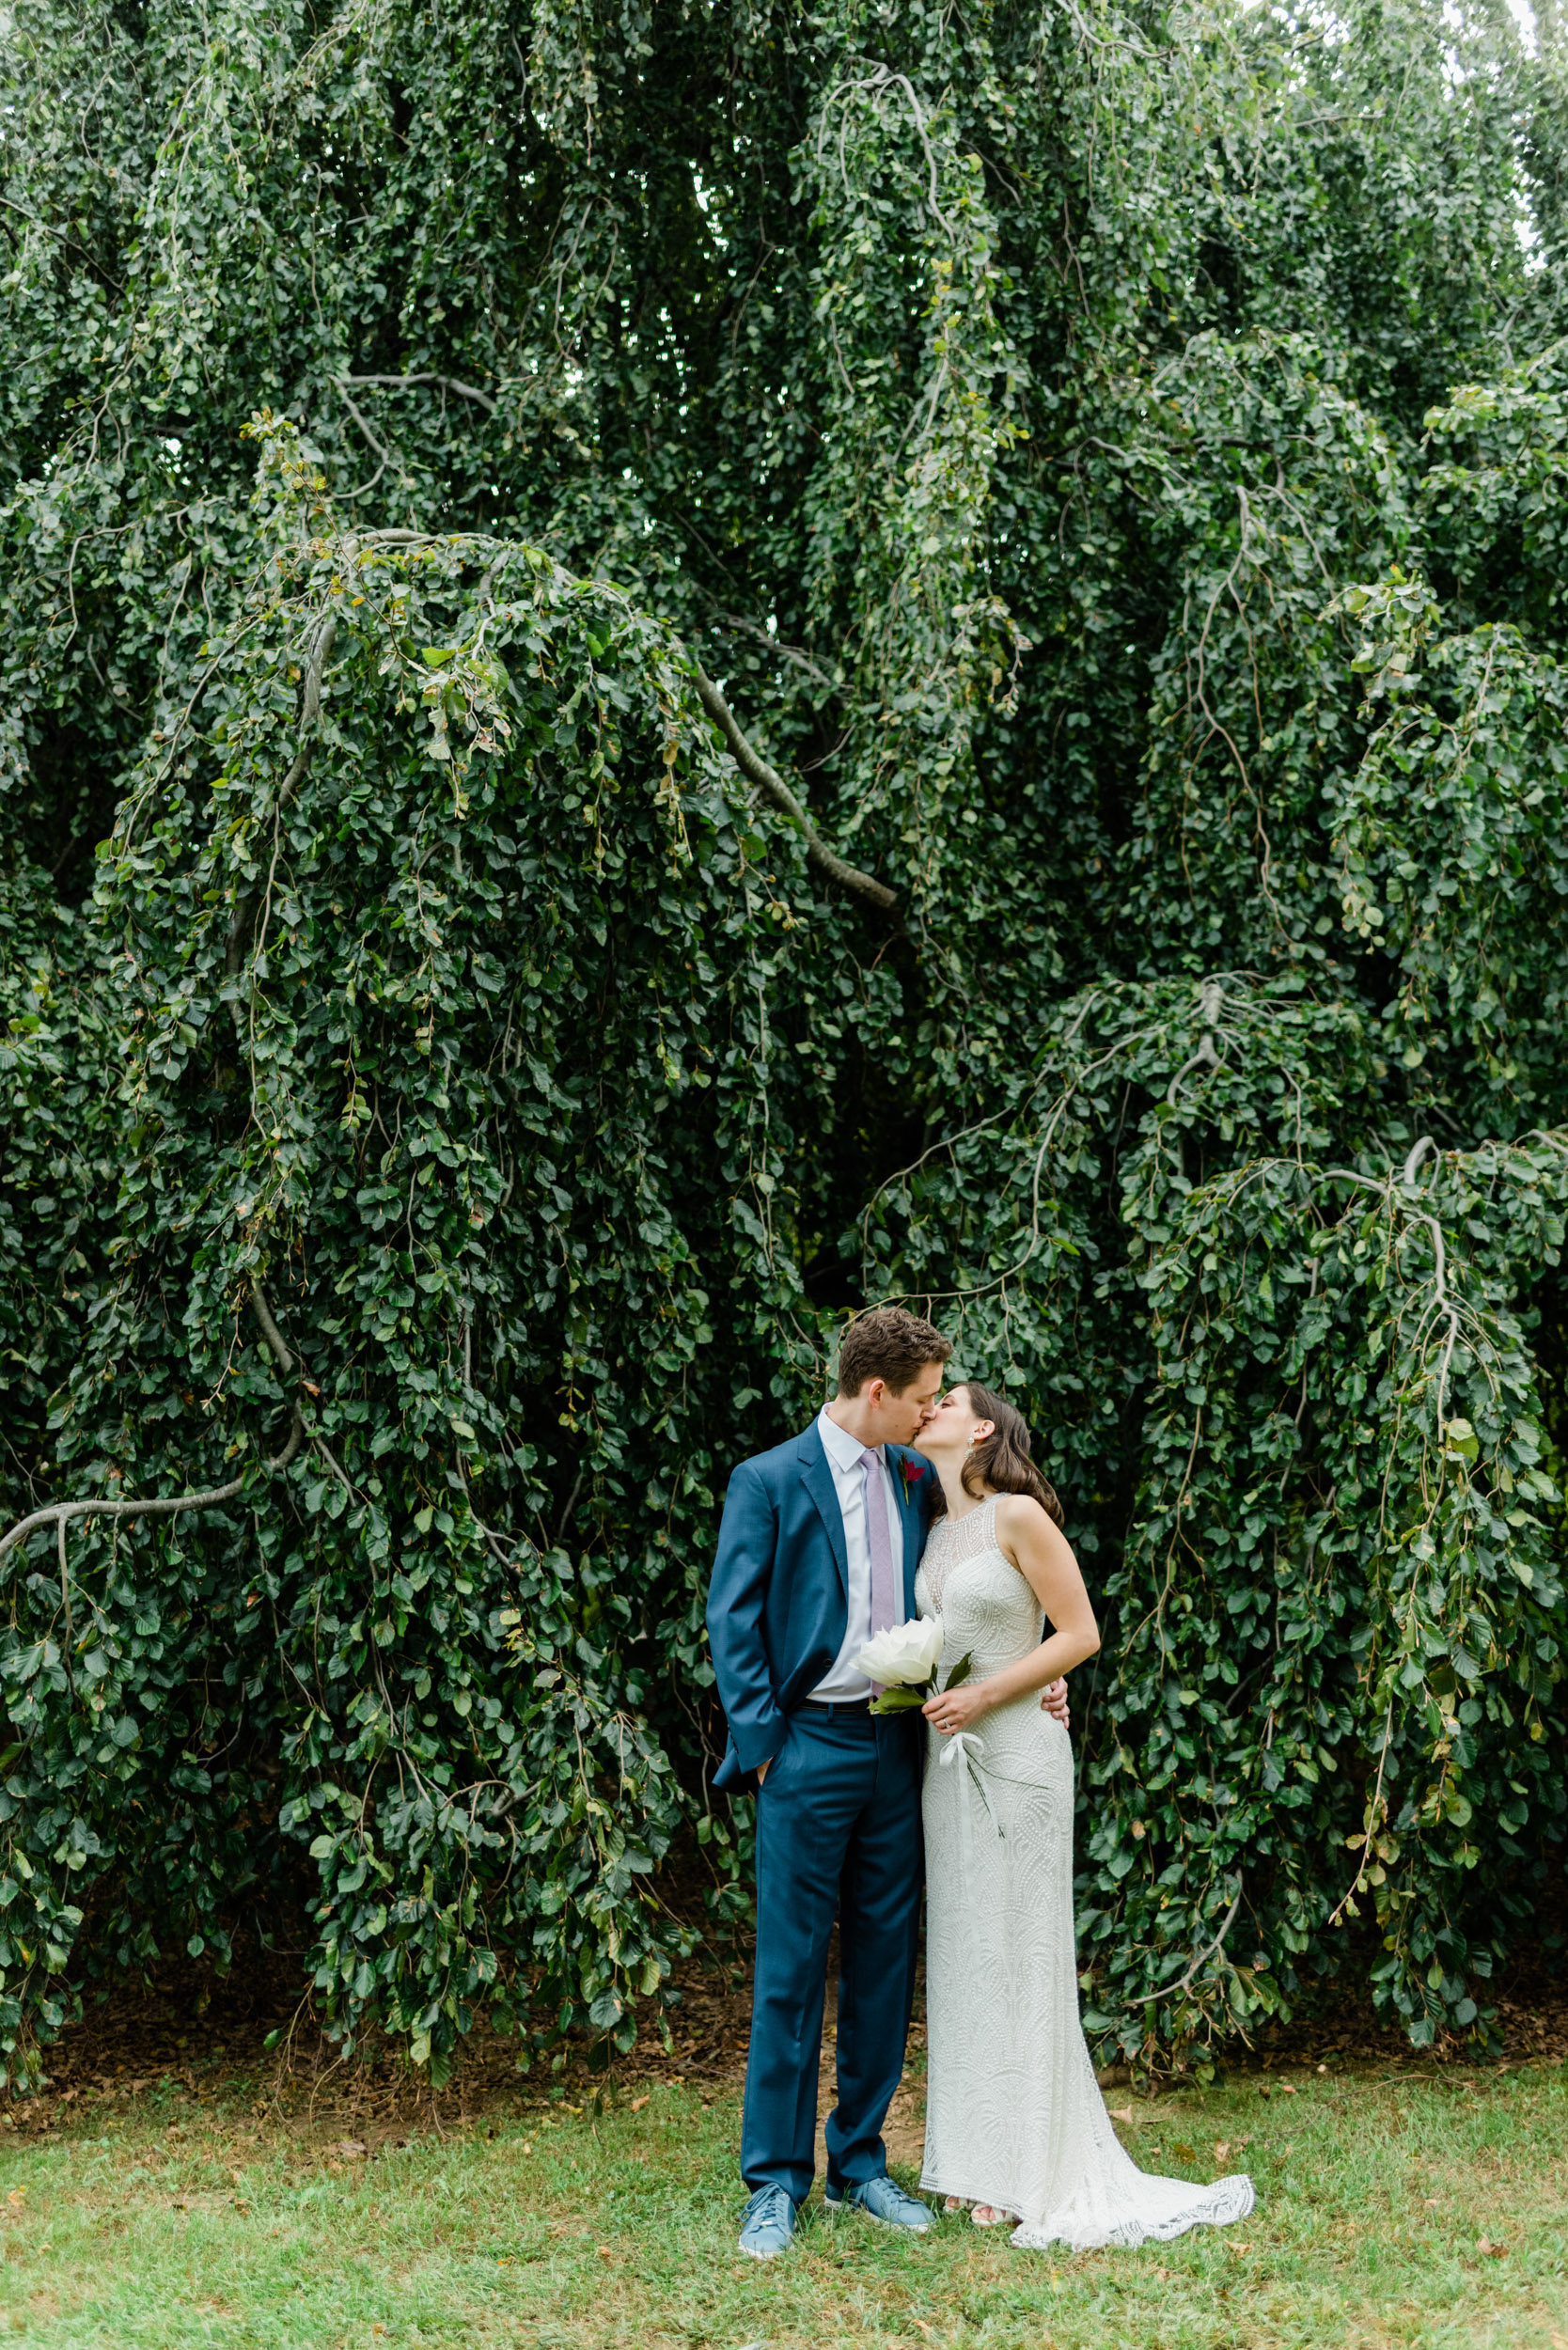 Bride and Groom Portraits in Connecticut